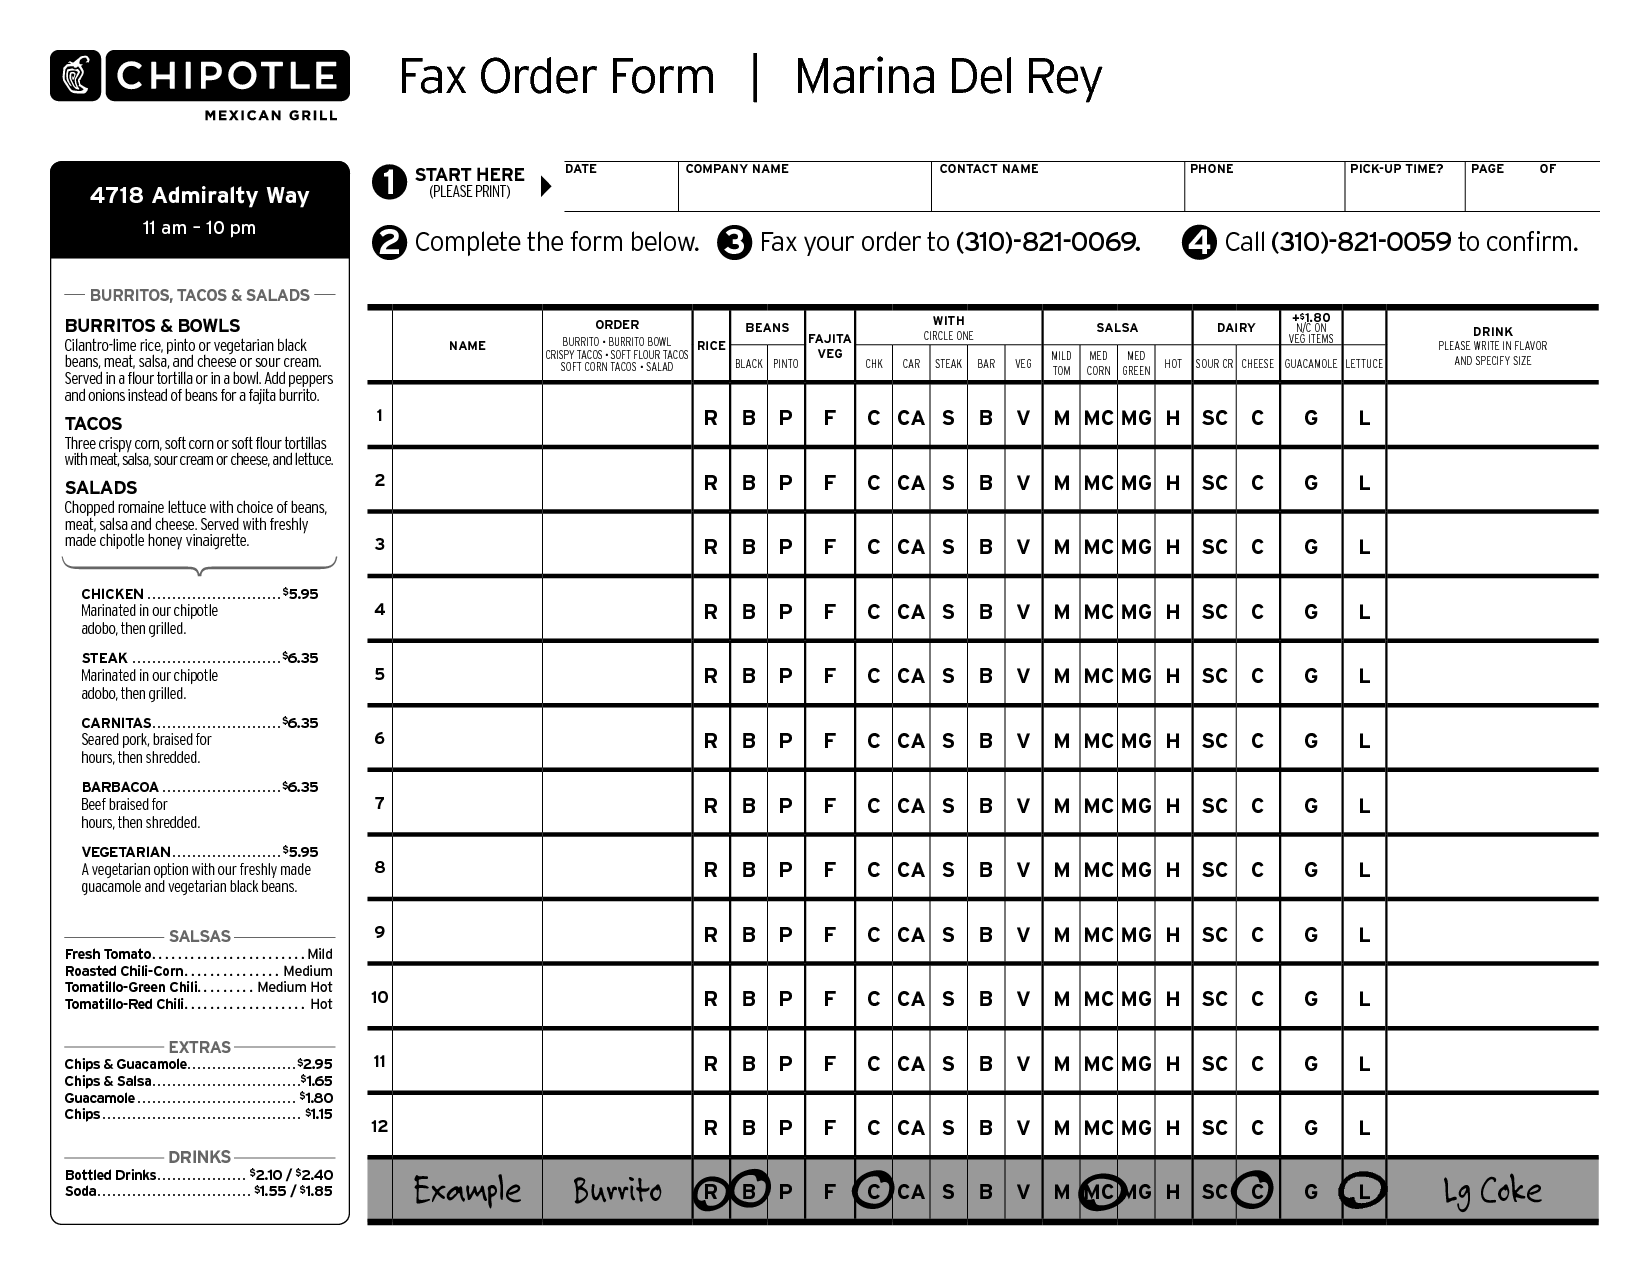 fax forms